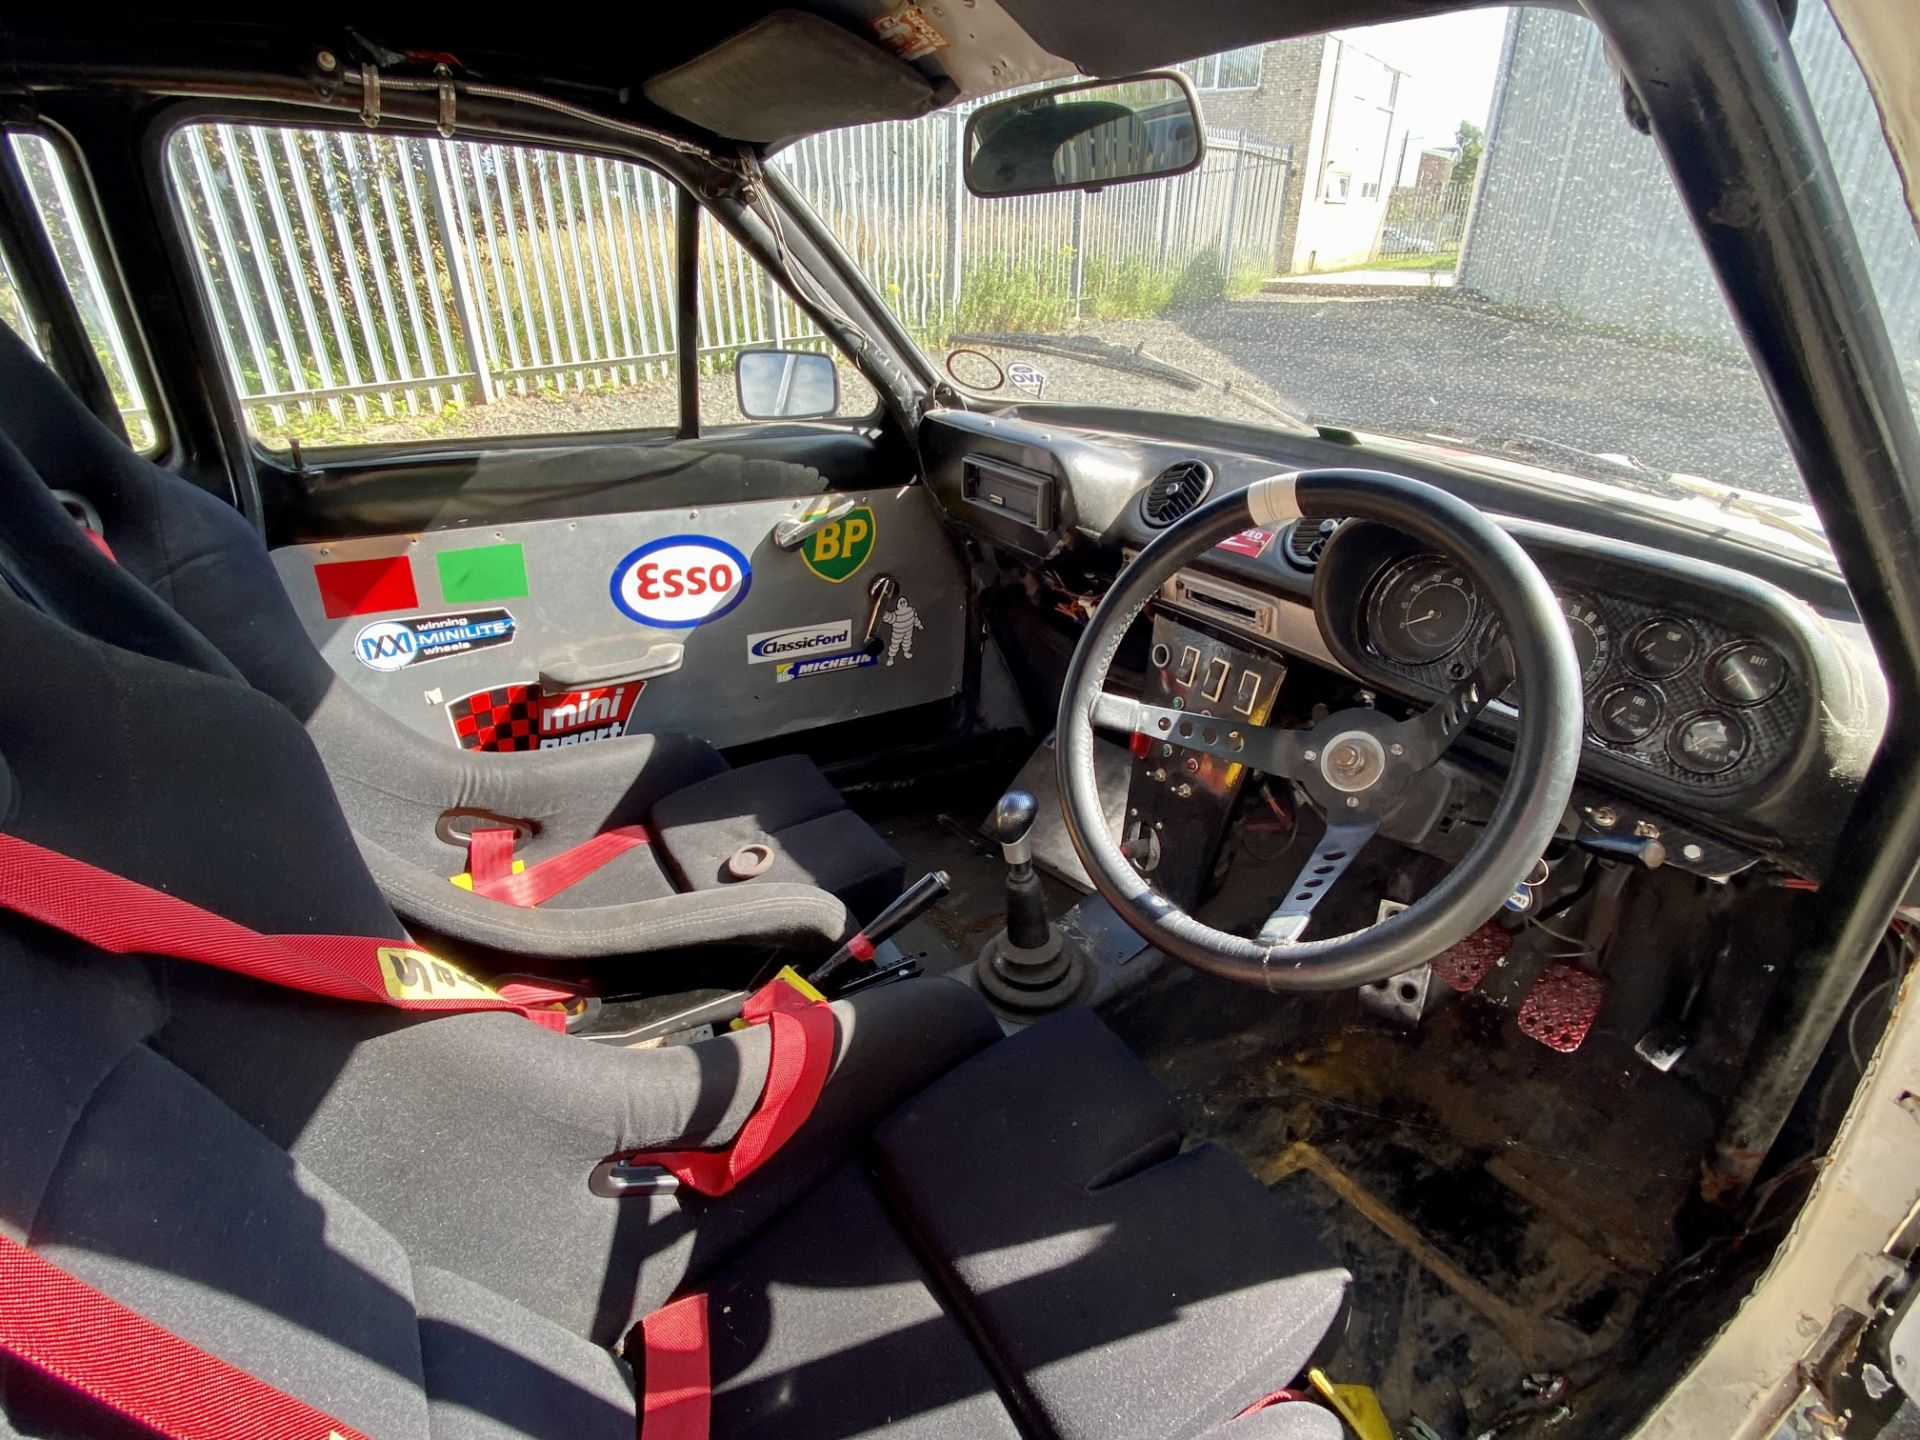 Ford Escort Mexico - Image 12 of 51